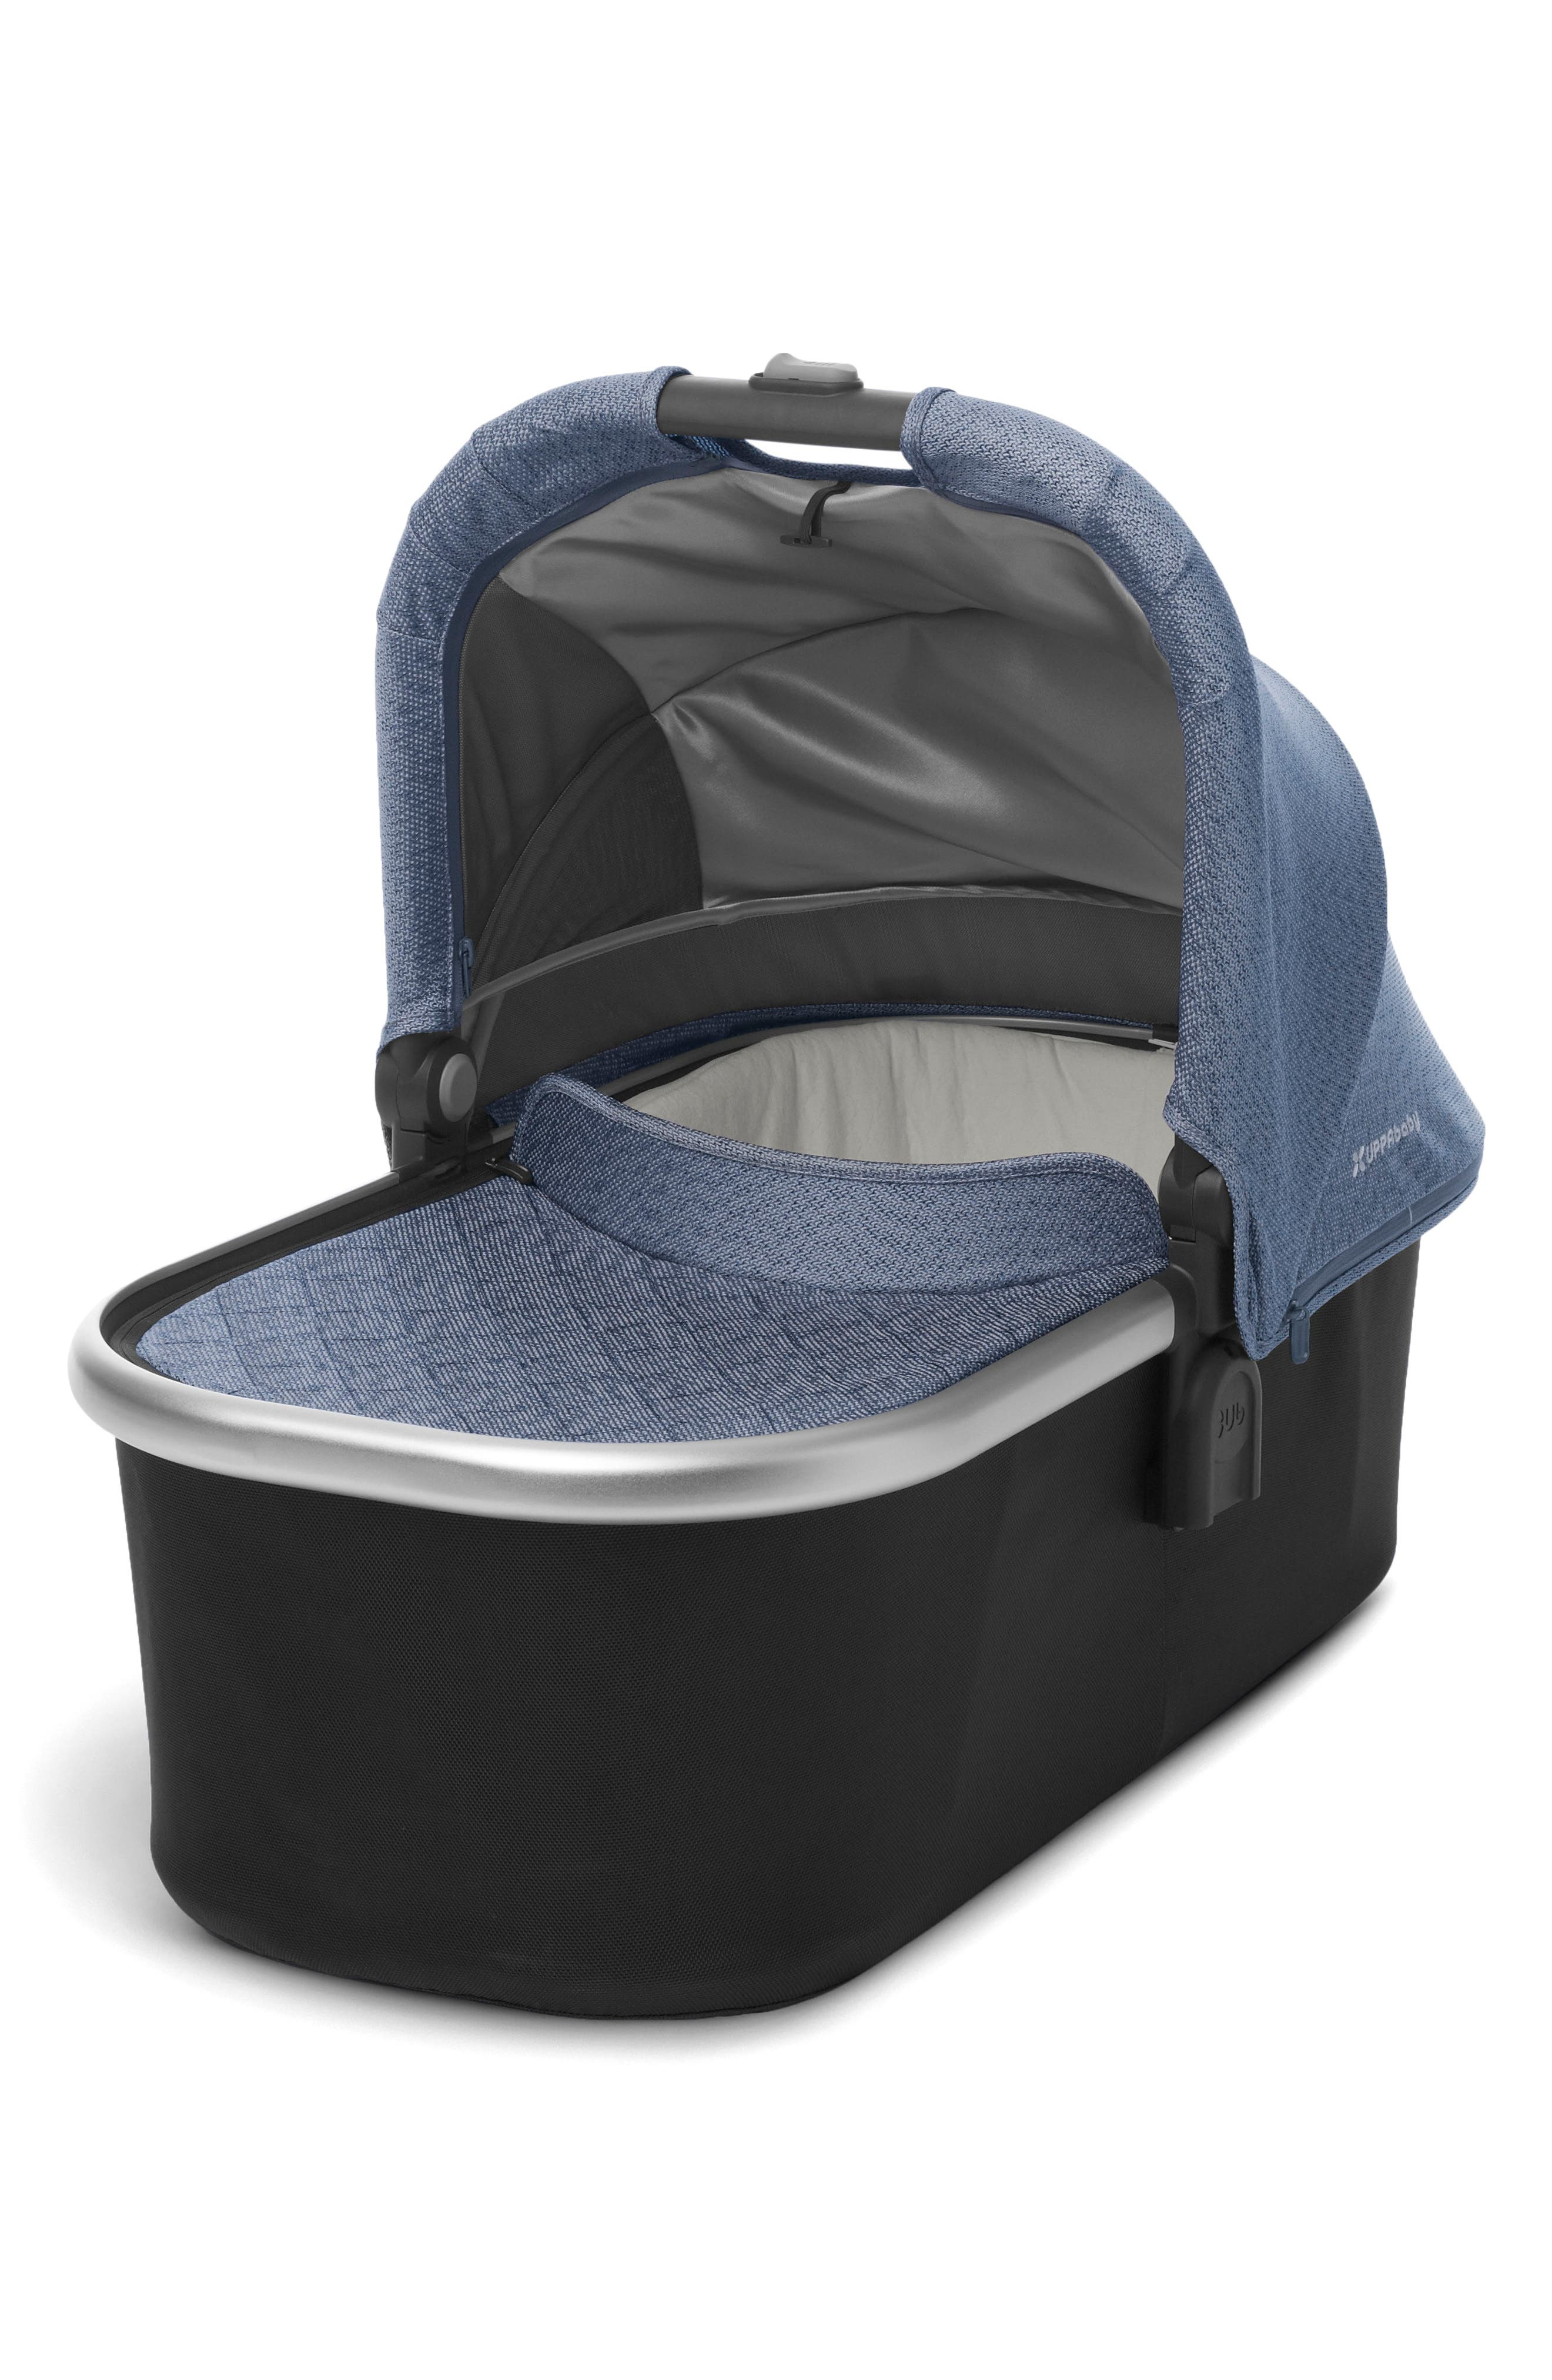 Henry Bassinet for CRUZ or VISTA Strollers,                             Main thumbnail 1, color,                             430